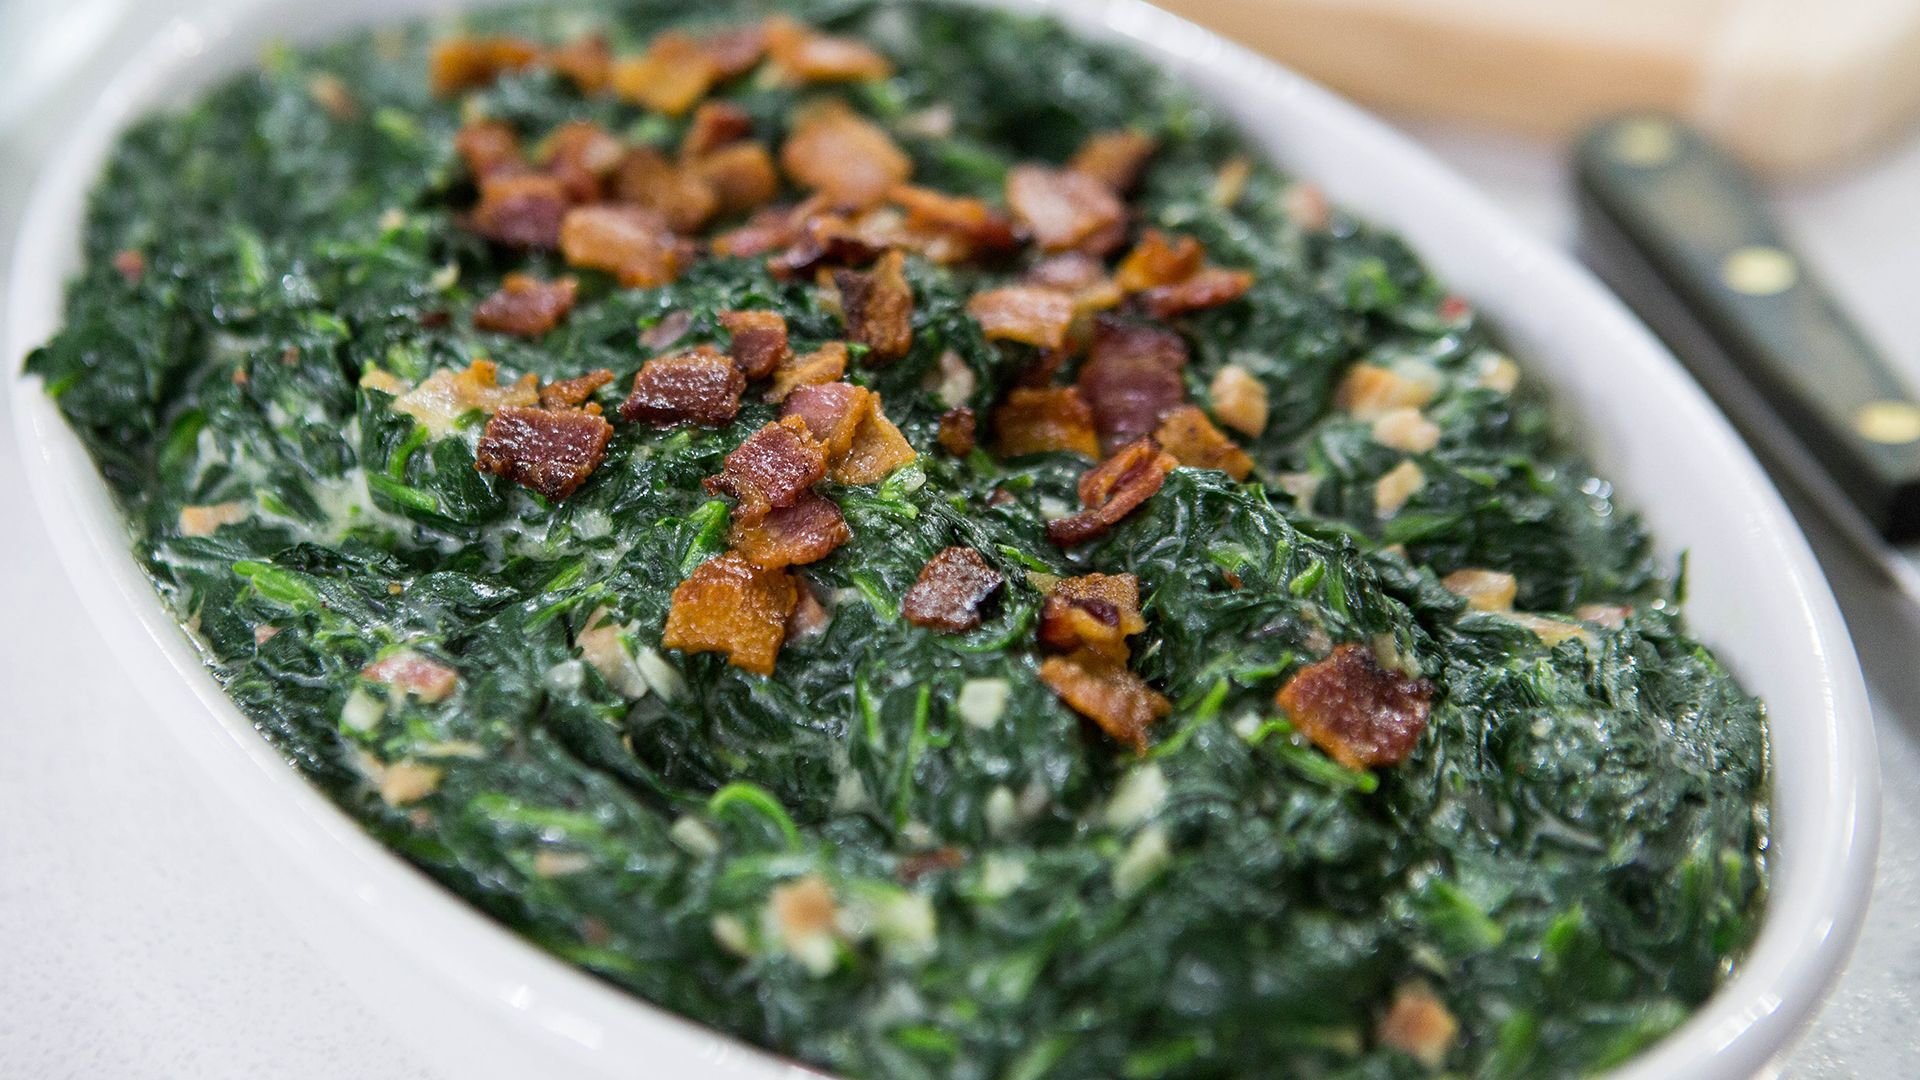 Al Roker's Creamed Spinach with Bacon - TODAY.com